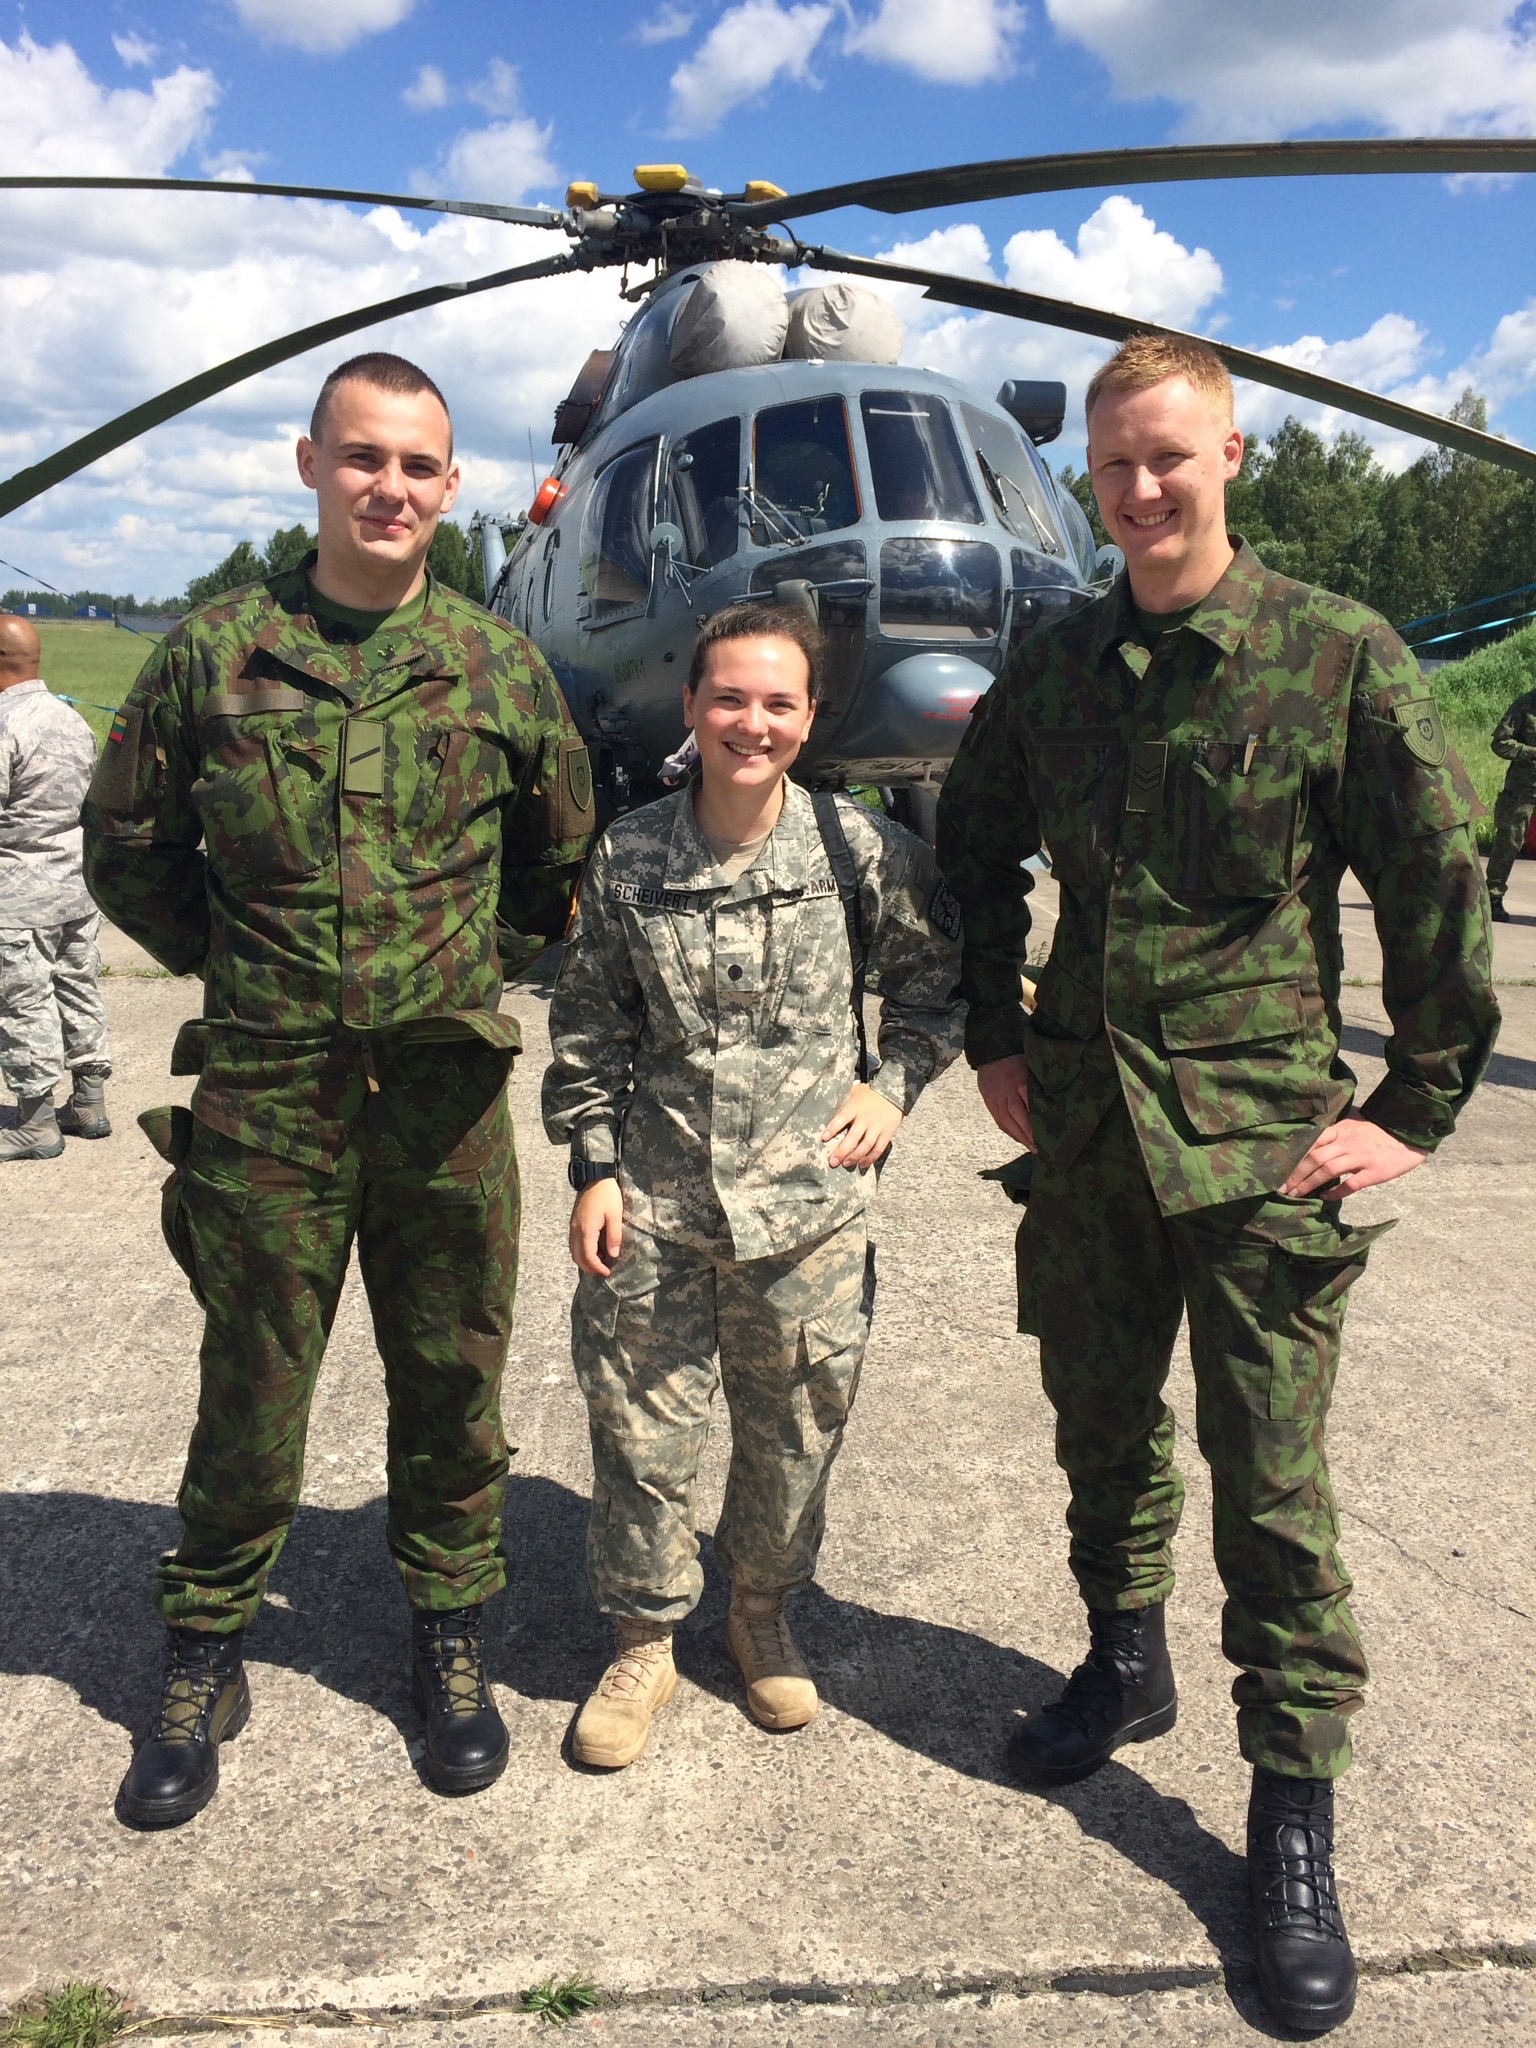 Liz Scheivert '16 taught English to members of the Lithuanian army during a summer Cultural Understanding and Language Proficiency mission.